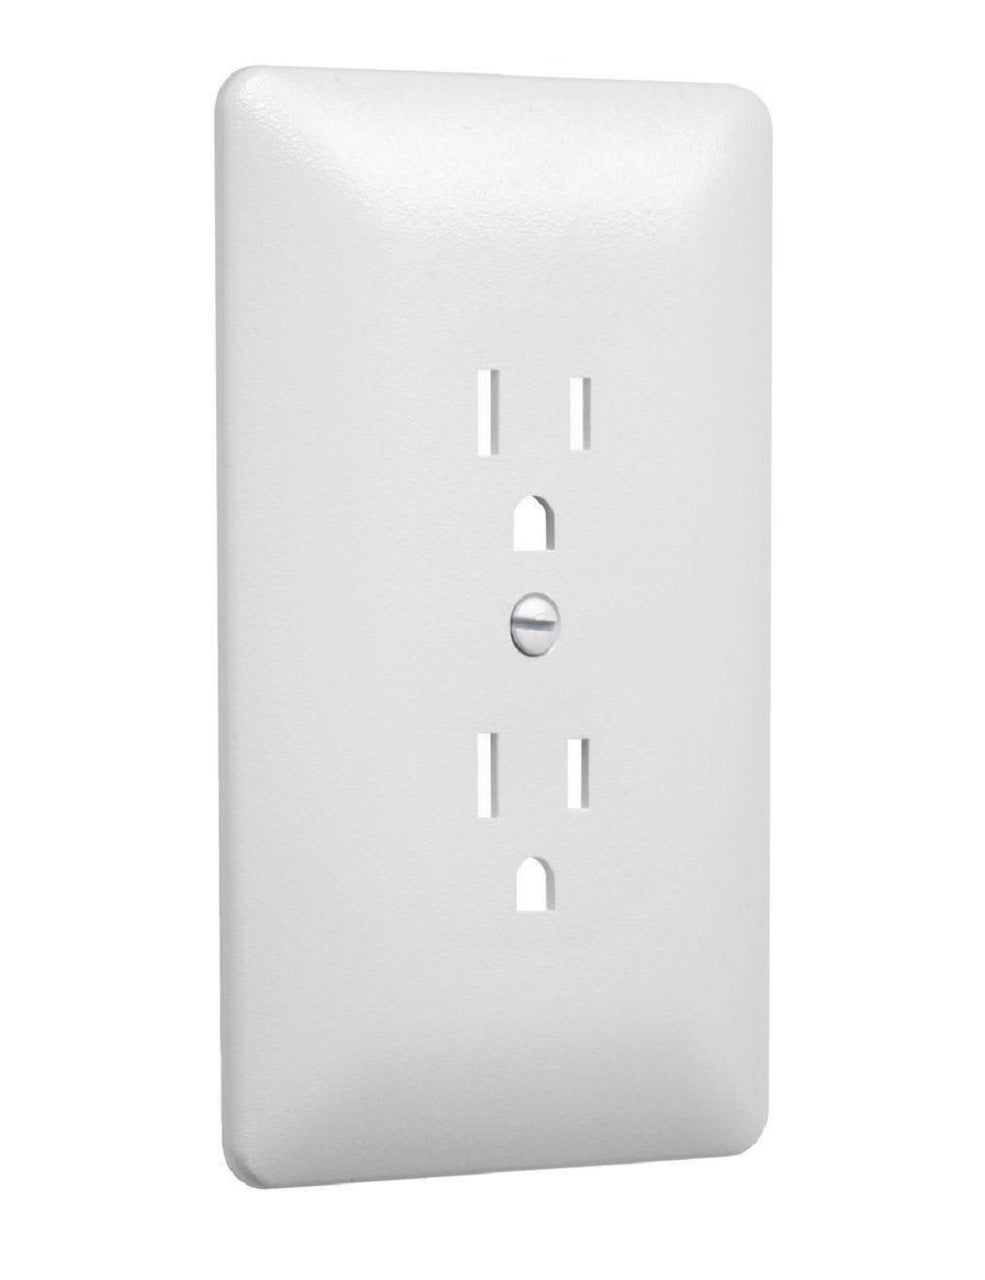 Taymac MW2000W Masque 2000 1-Gang Duplex Wall Plate Cover, White